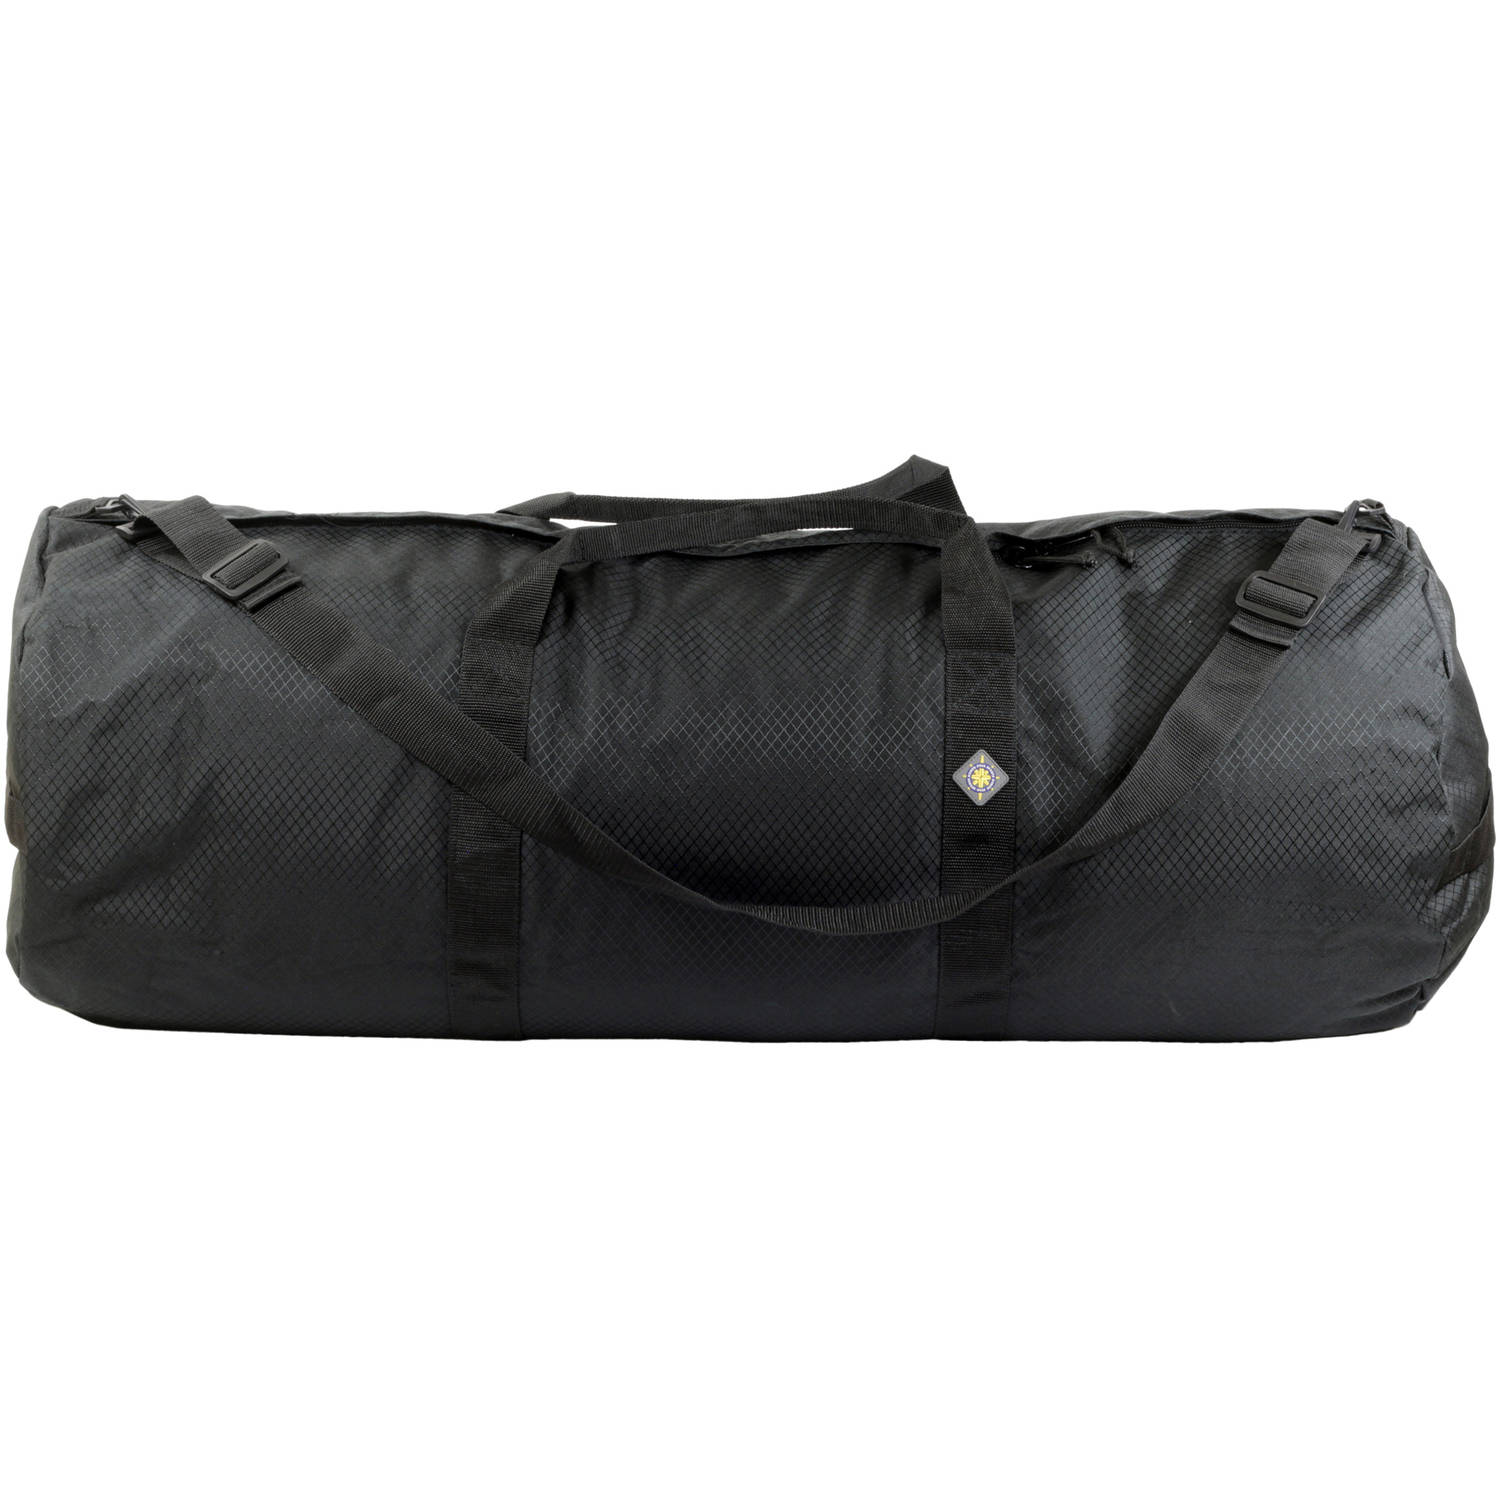 North Star SD 1640 Sport Duffle Bag, Midnight Black by Northstar Bags